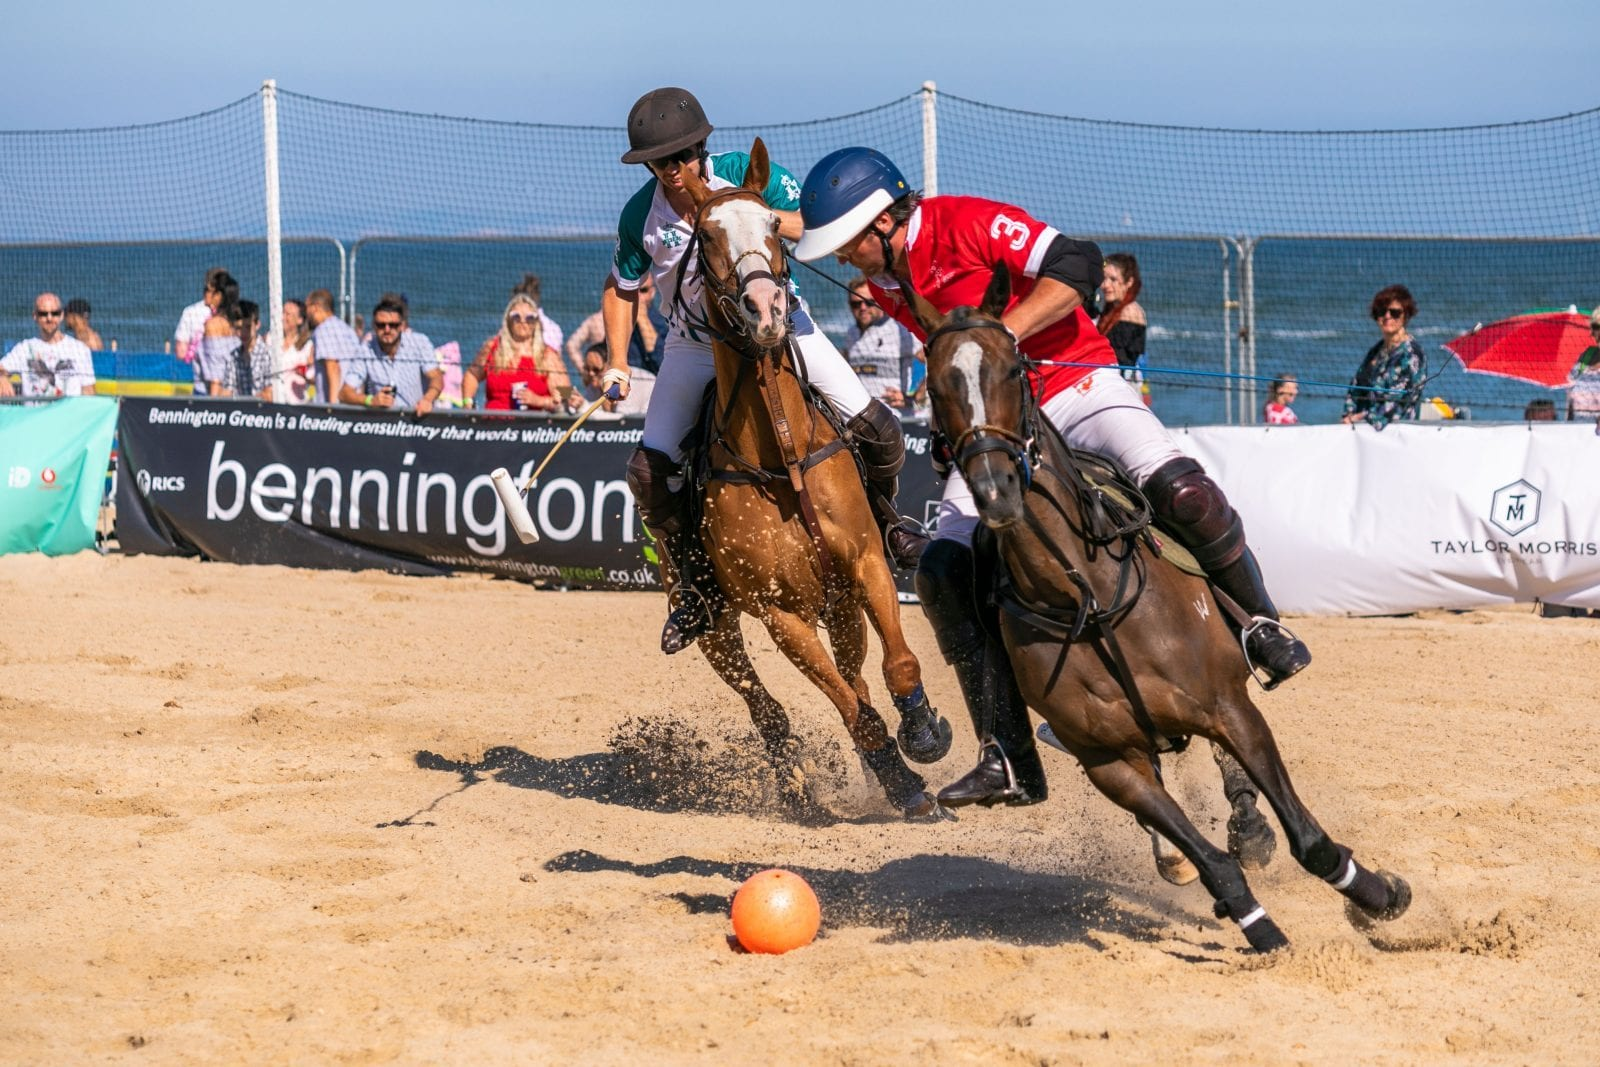 Image result for SAND POLO sandbanks